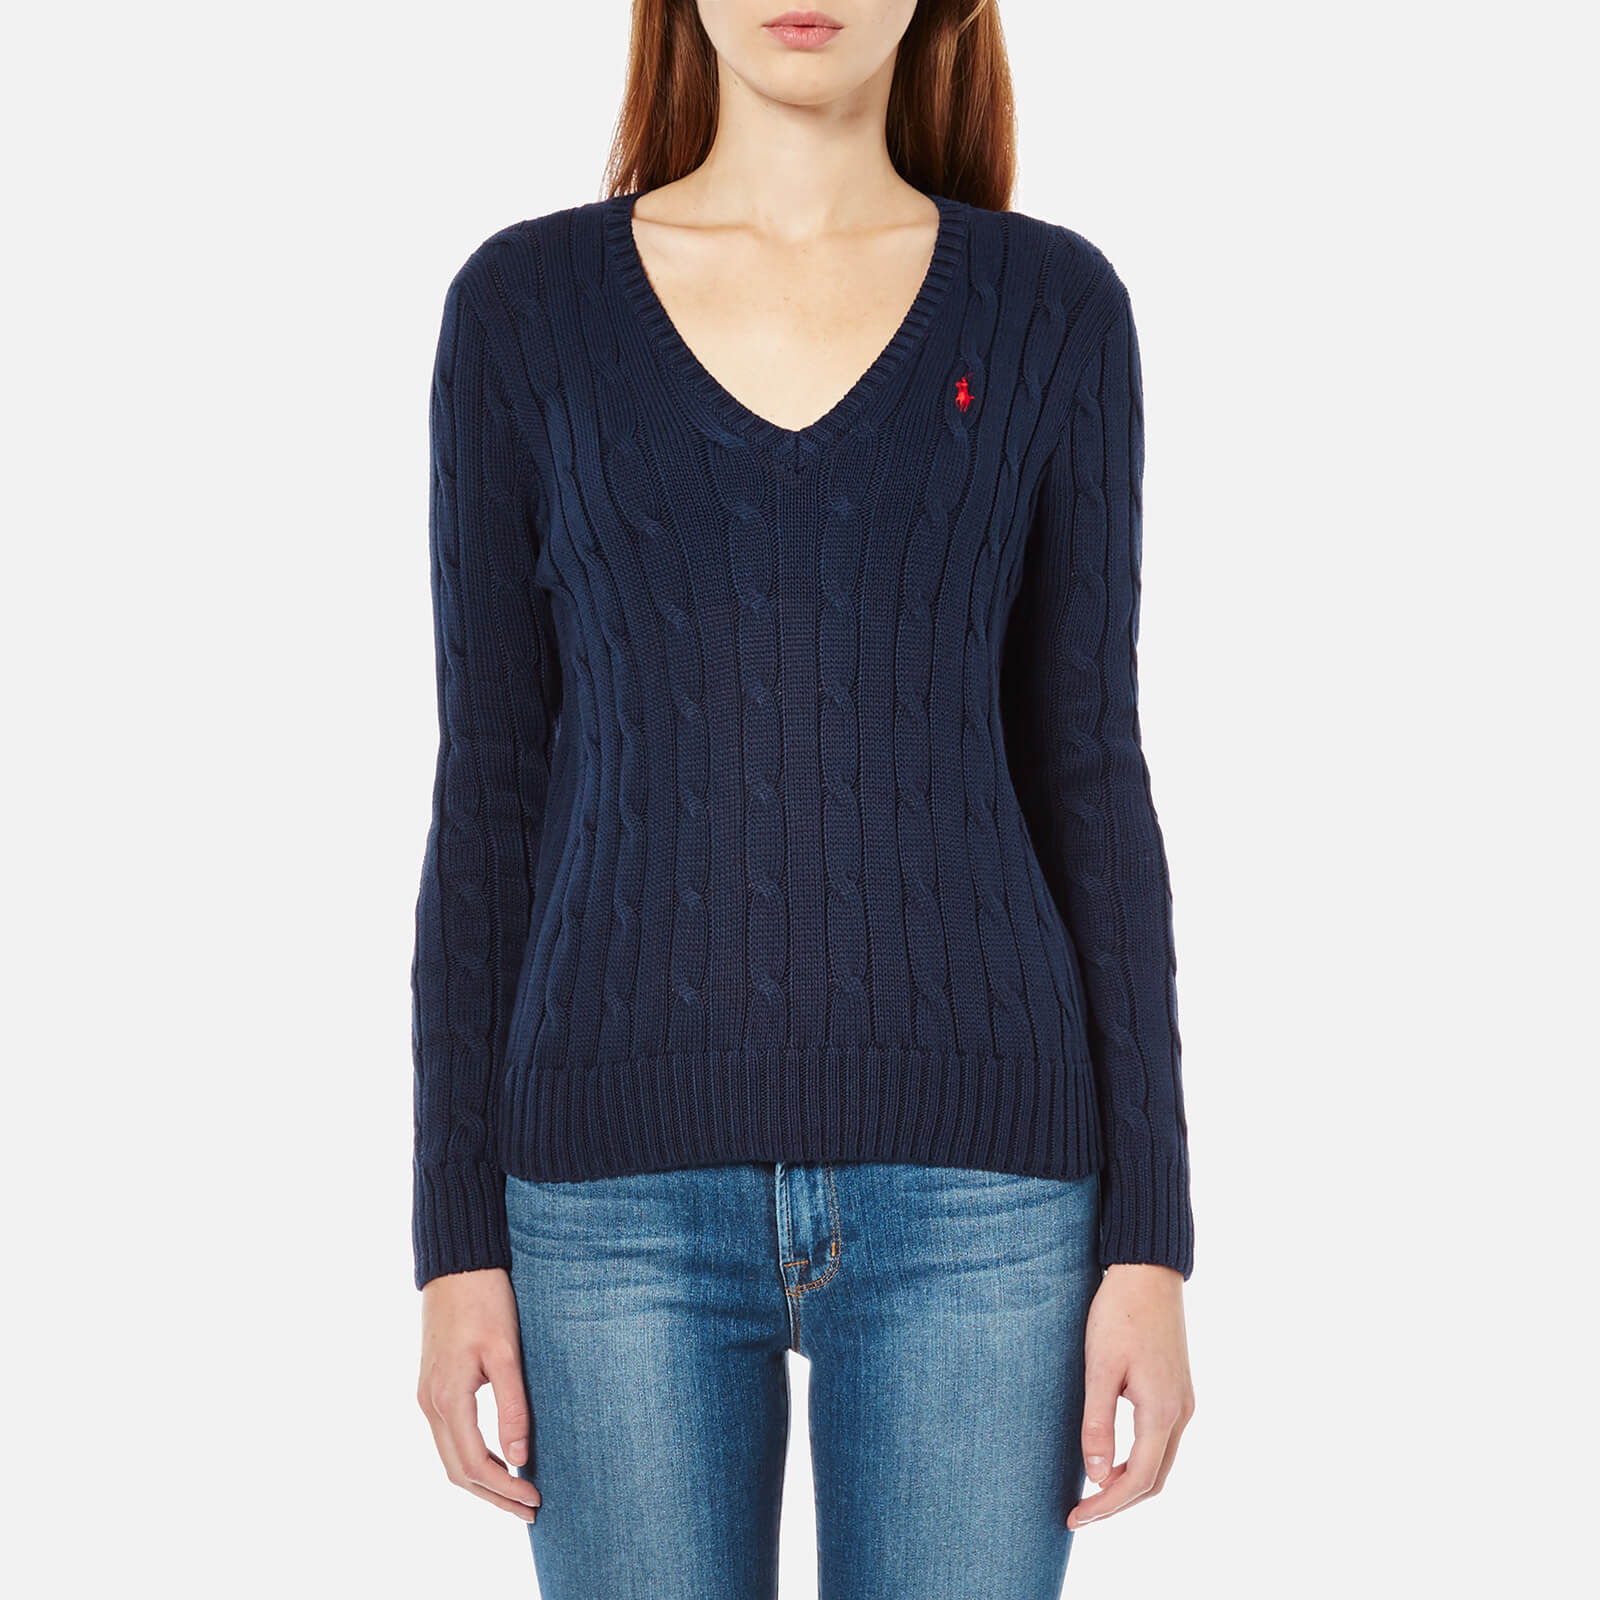 8a6b601e8 Polo Ralph Lauren Women s Kimberly Jumper - Hunter Navy - Free UK Delivery  over £50